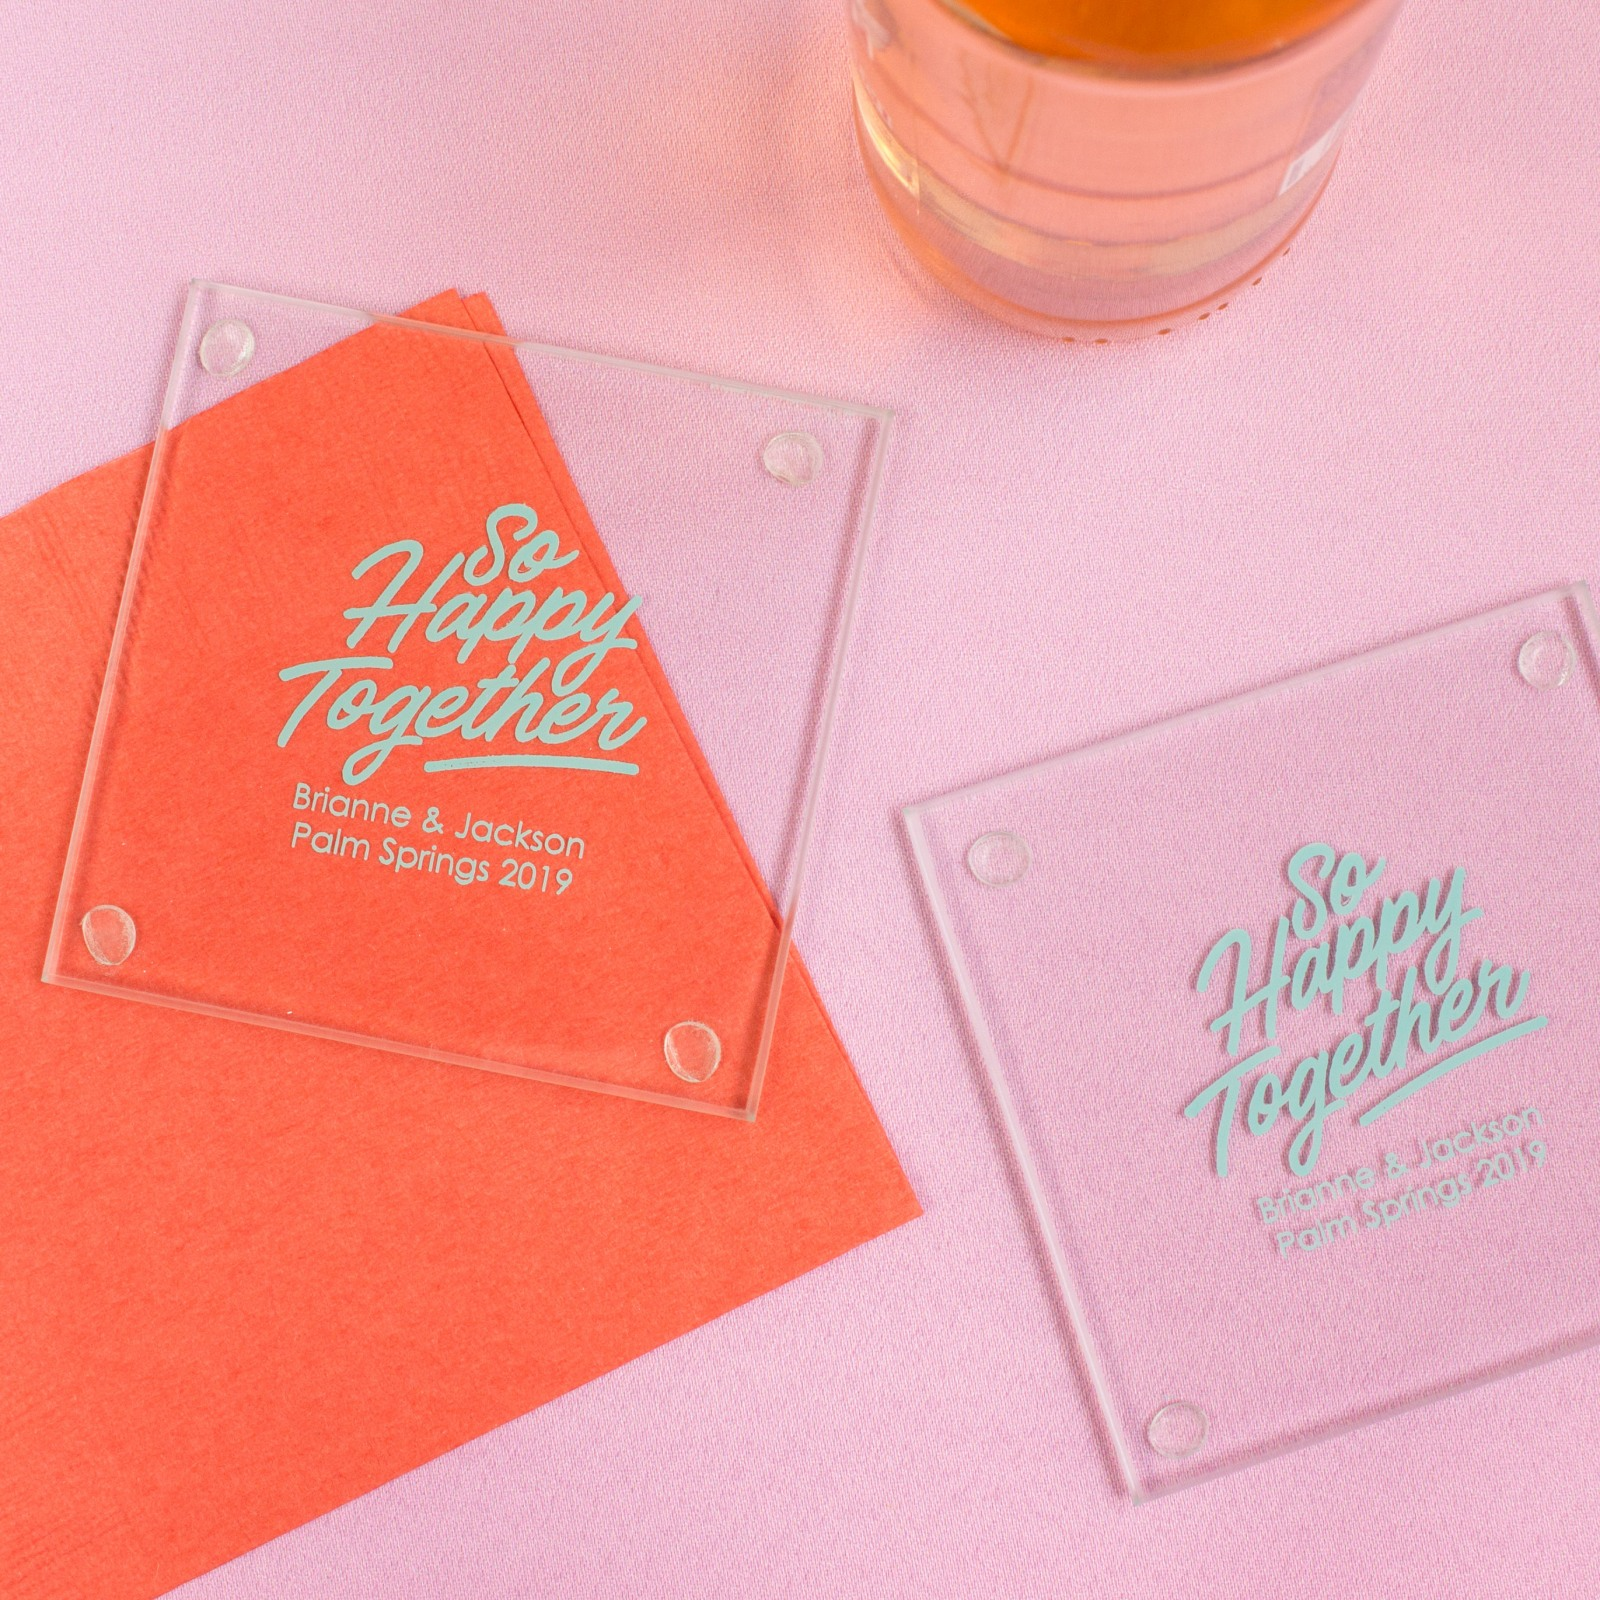 Personalized Happy Together Glass Coasters